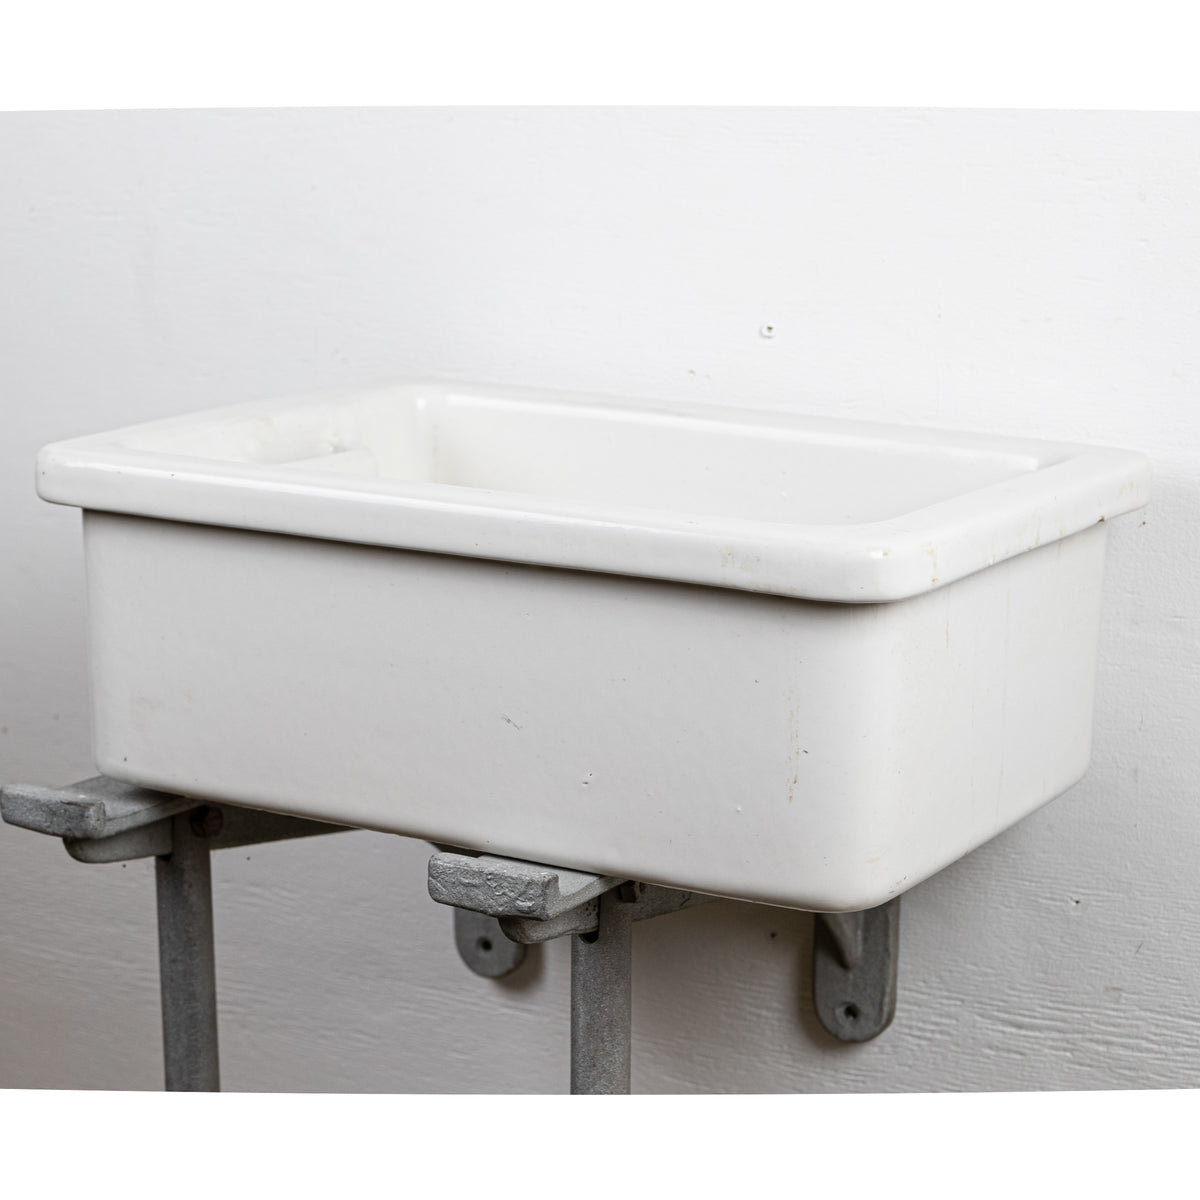 Reclaimed Royal Doulton School Butler Sinks (many available) | The Architectural Forum